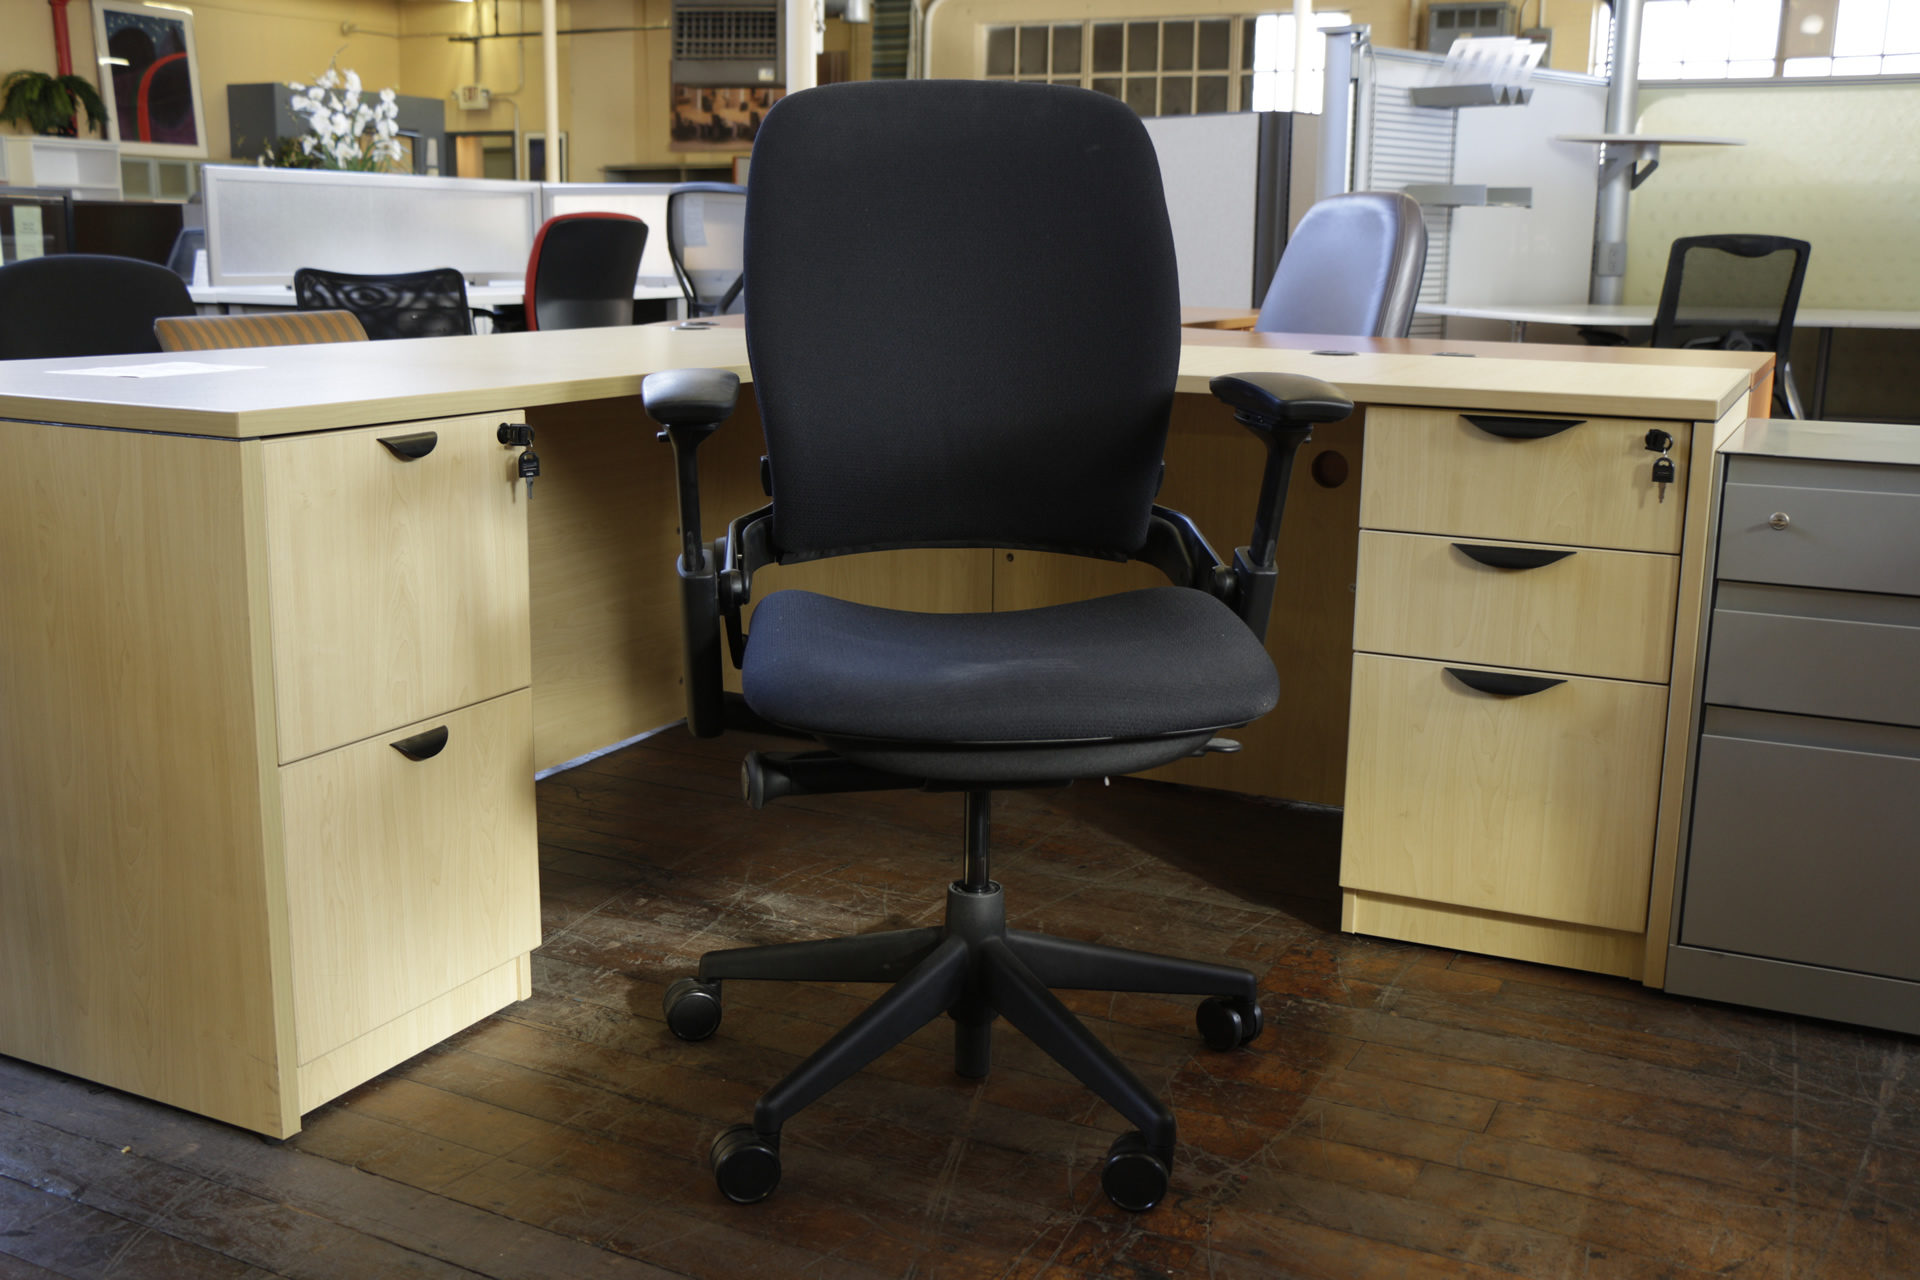 Steelcase Leap Chairs in Black Fabric